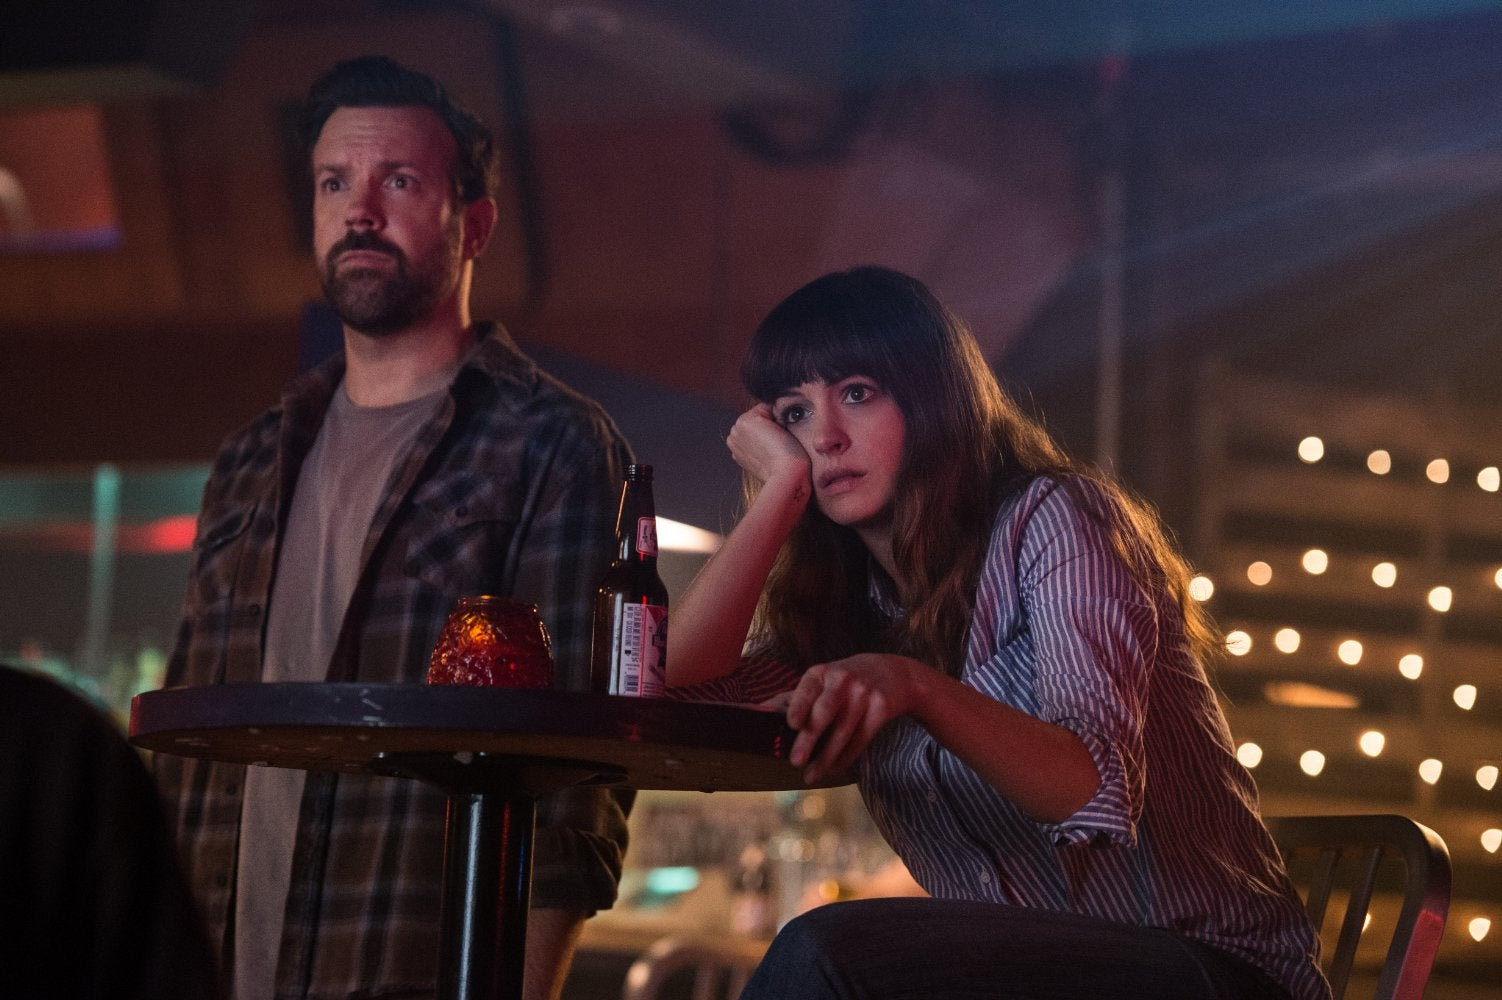 Movie Review: Anne Hathaway Is Literally a Giant Monster in the Crazy, Original, Colossal